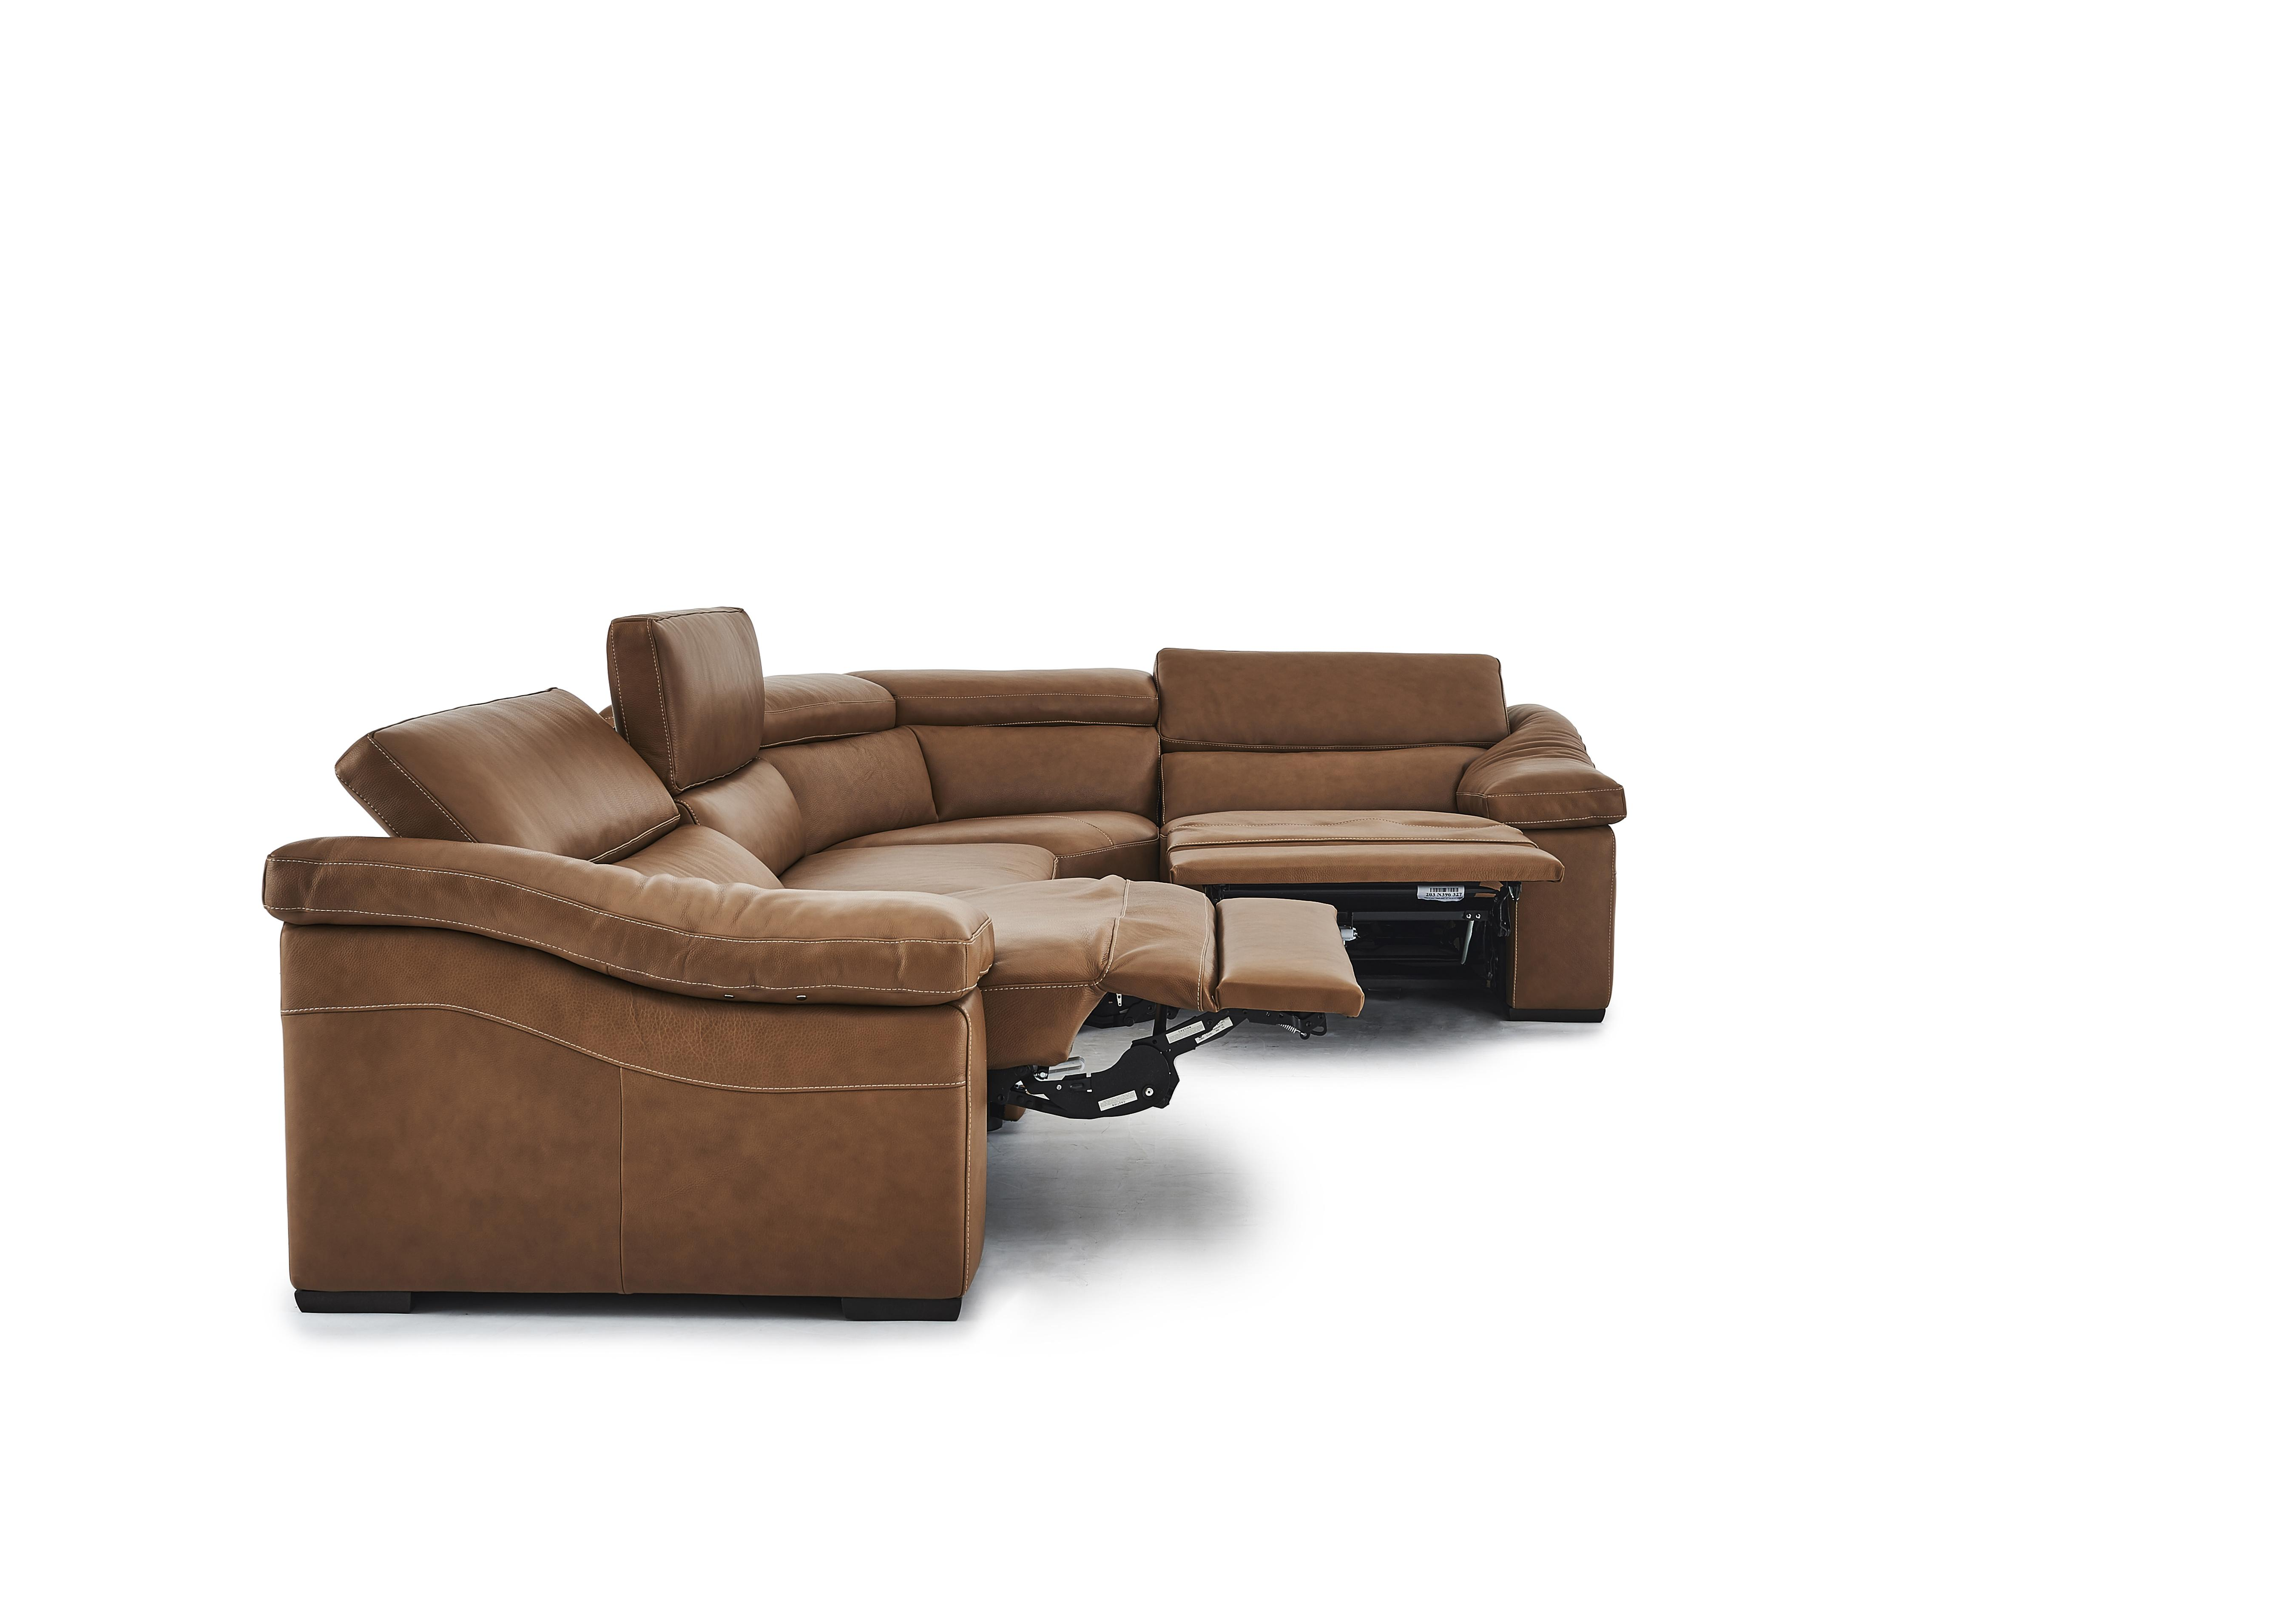 Natuzzi Sofa Harveys 100 Corner Reclining Sofa Recliner Sofa Sale Sofas Center Lazyoy